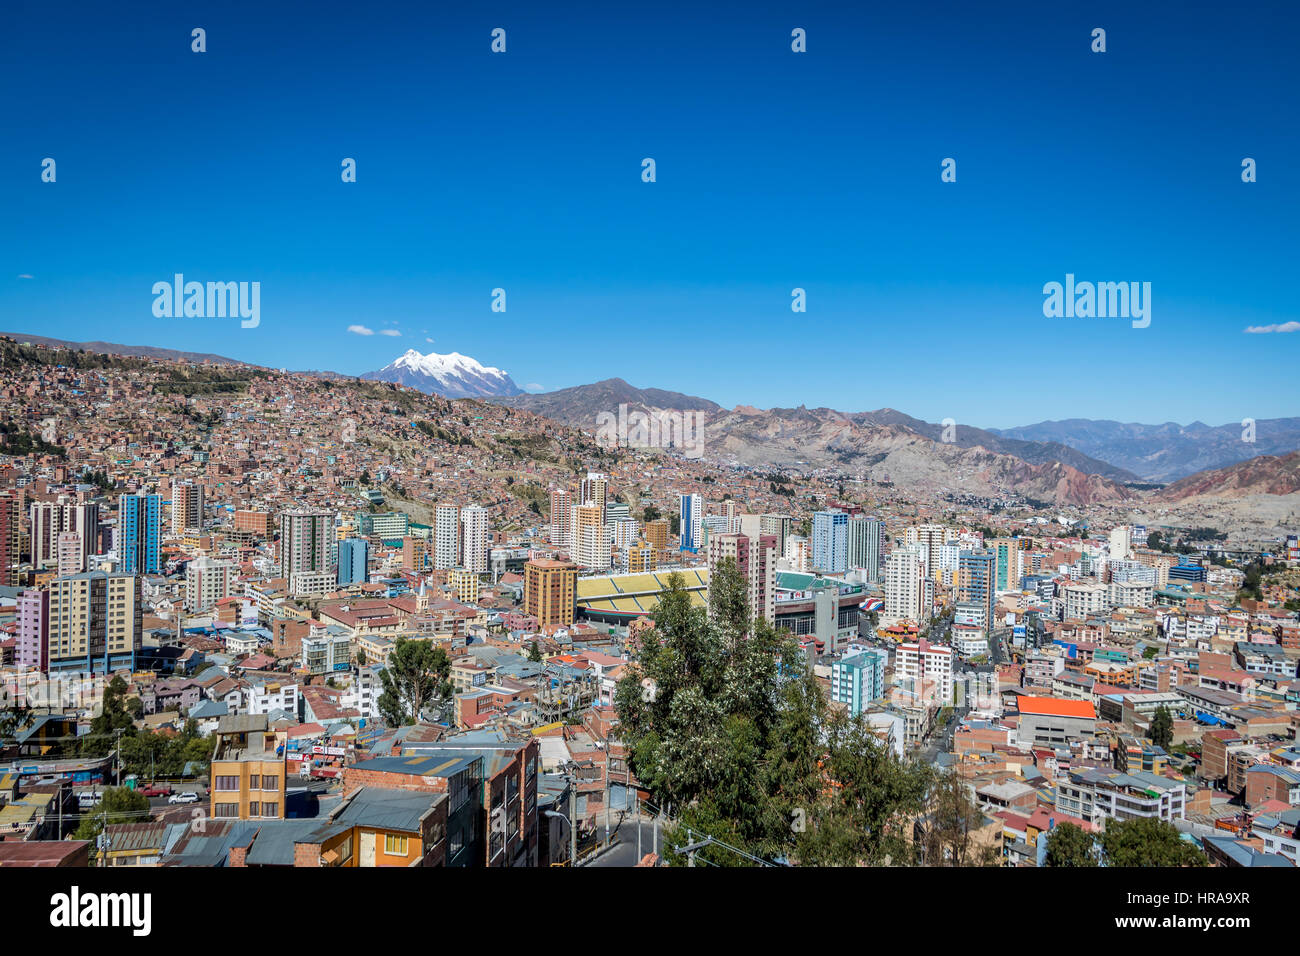 Vue panoramique de La Paz avec Montagne Illimani - La Paz, Bolivie Photo Stock